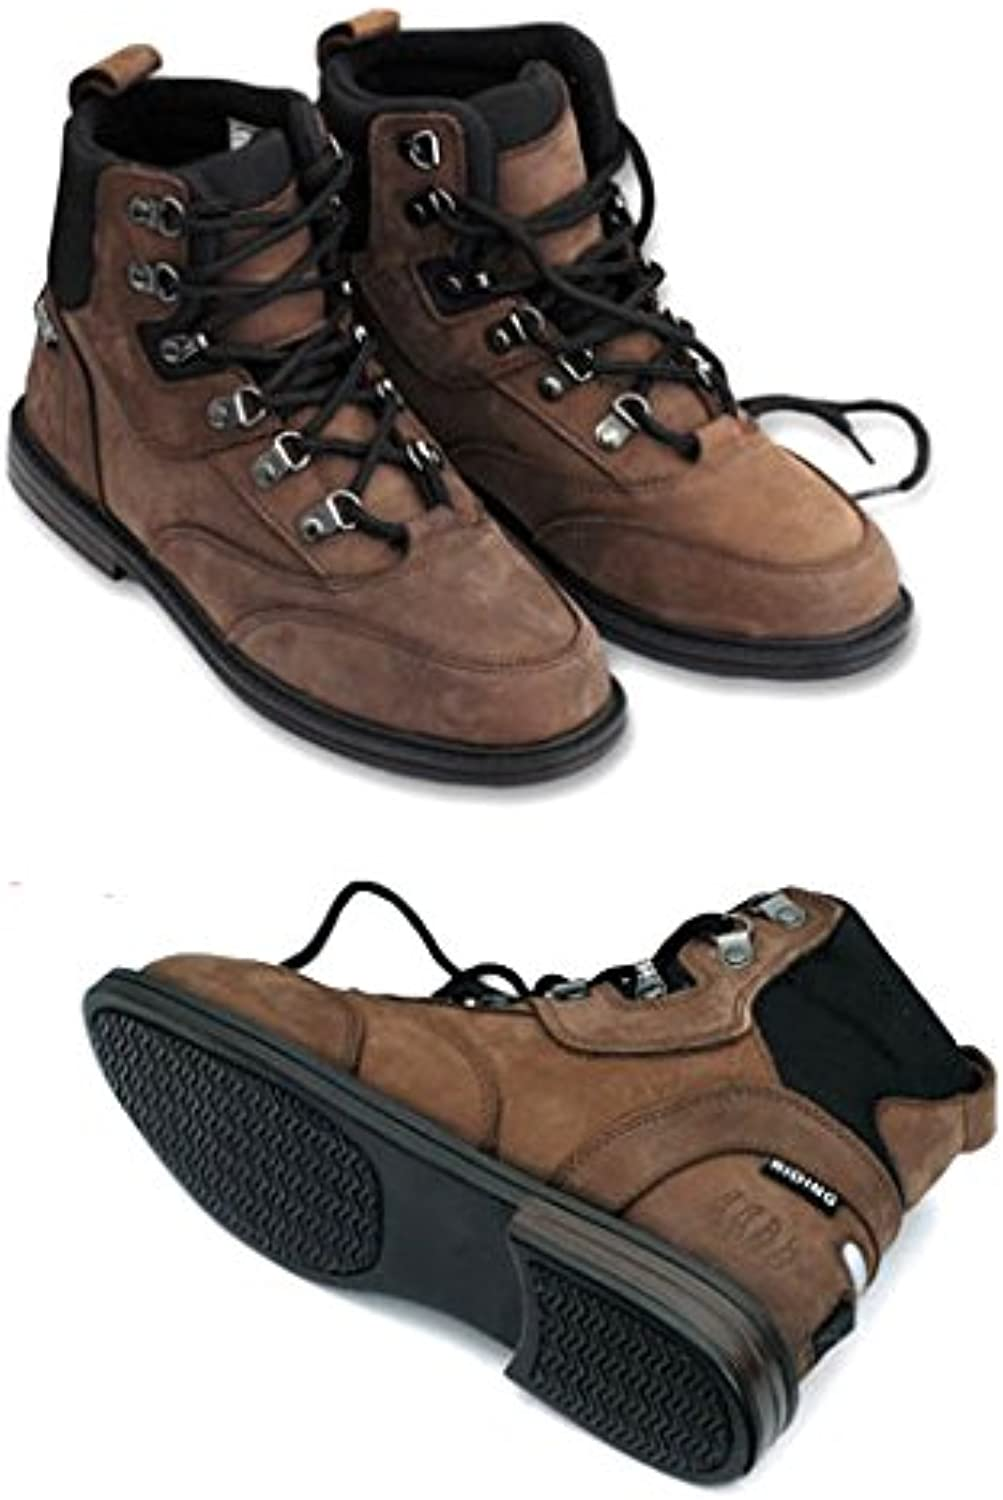 Outdoor - / Riding boots  -